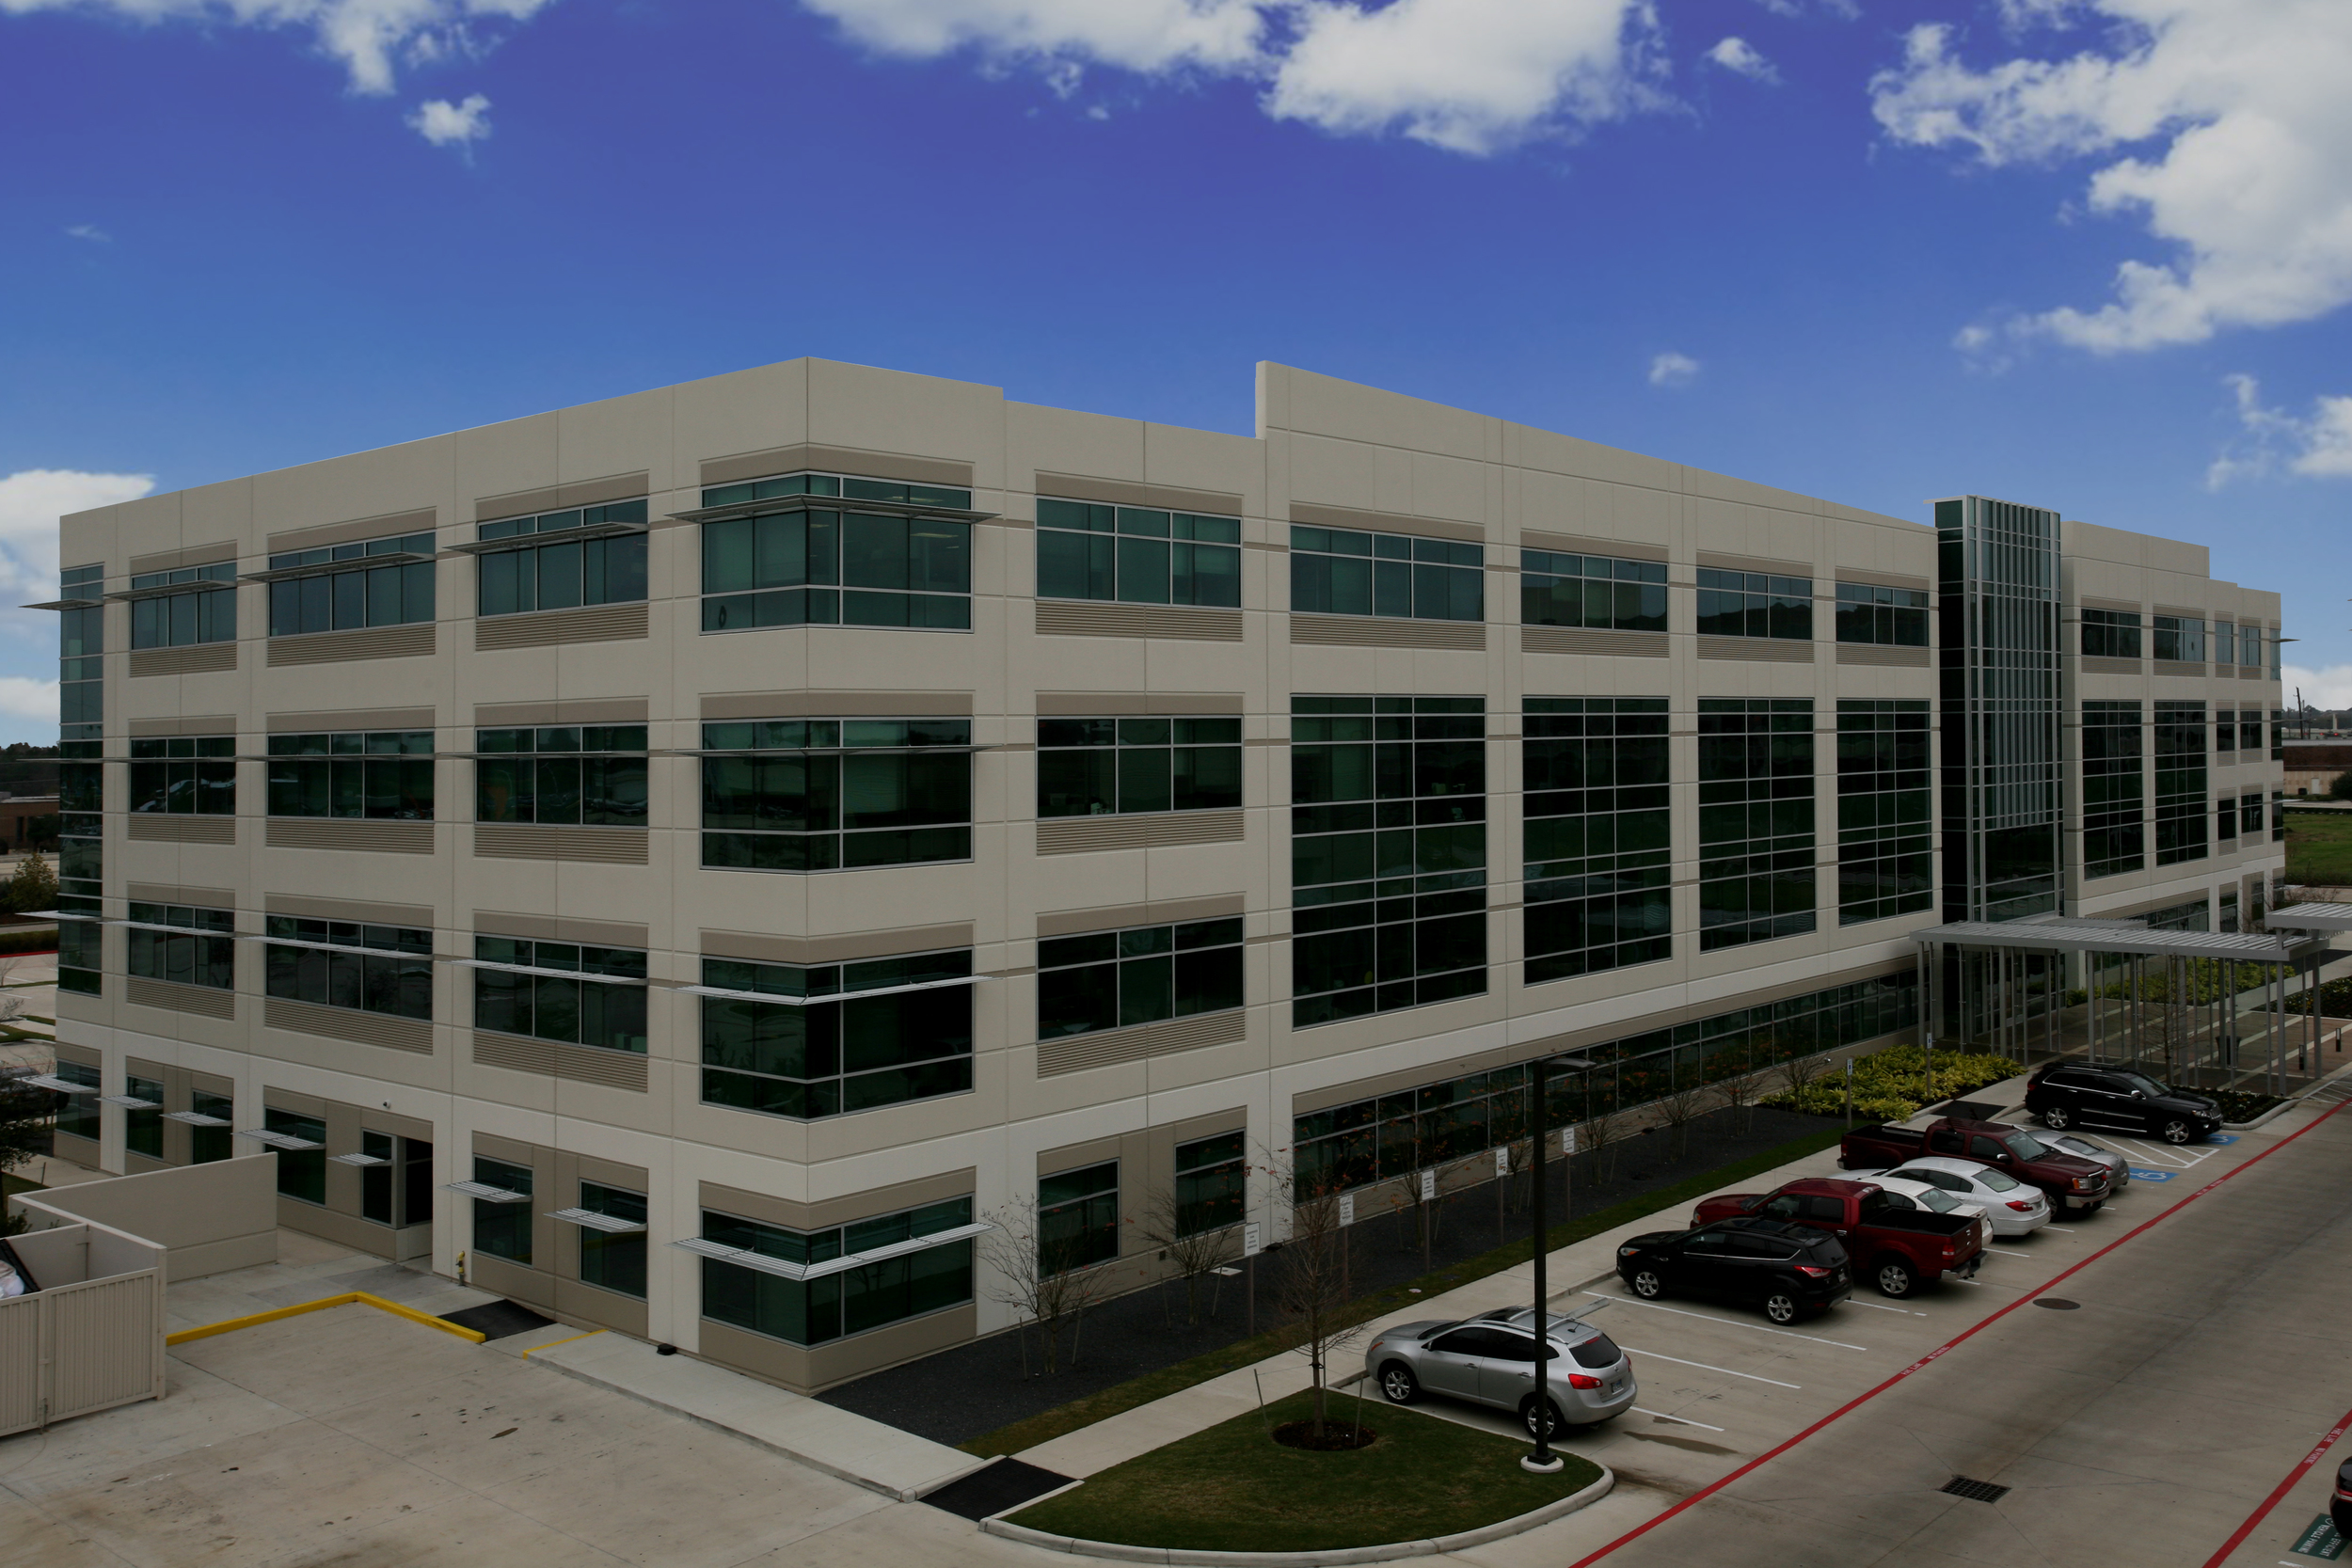 Westgate Transwestern. Project designed and managed by Oscar Valdez working at Haynes Whaley Associates